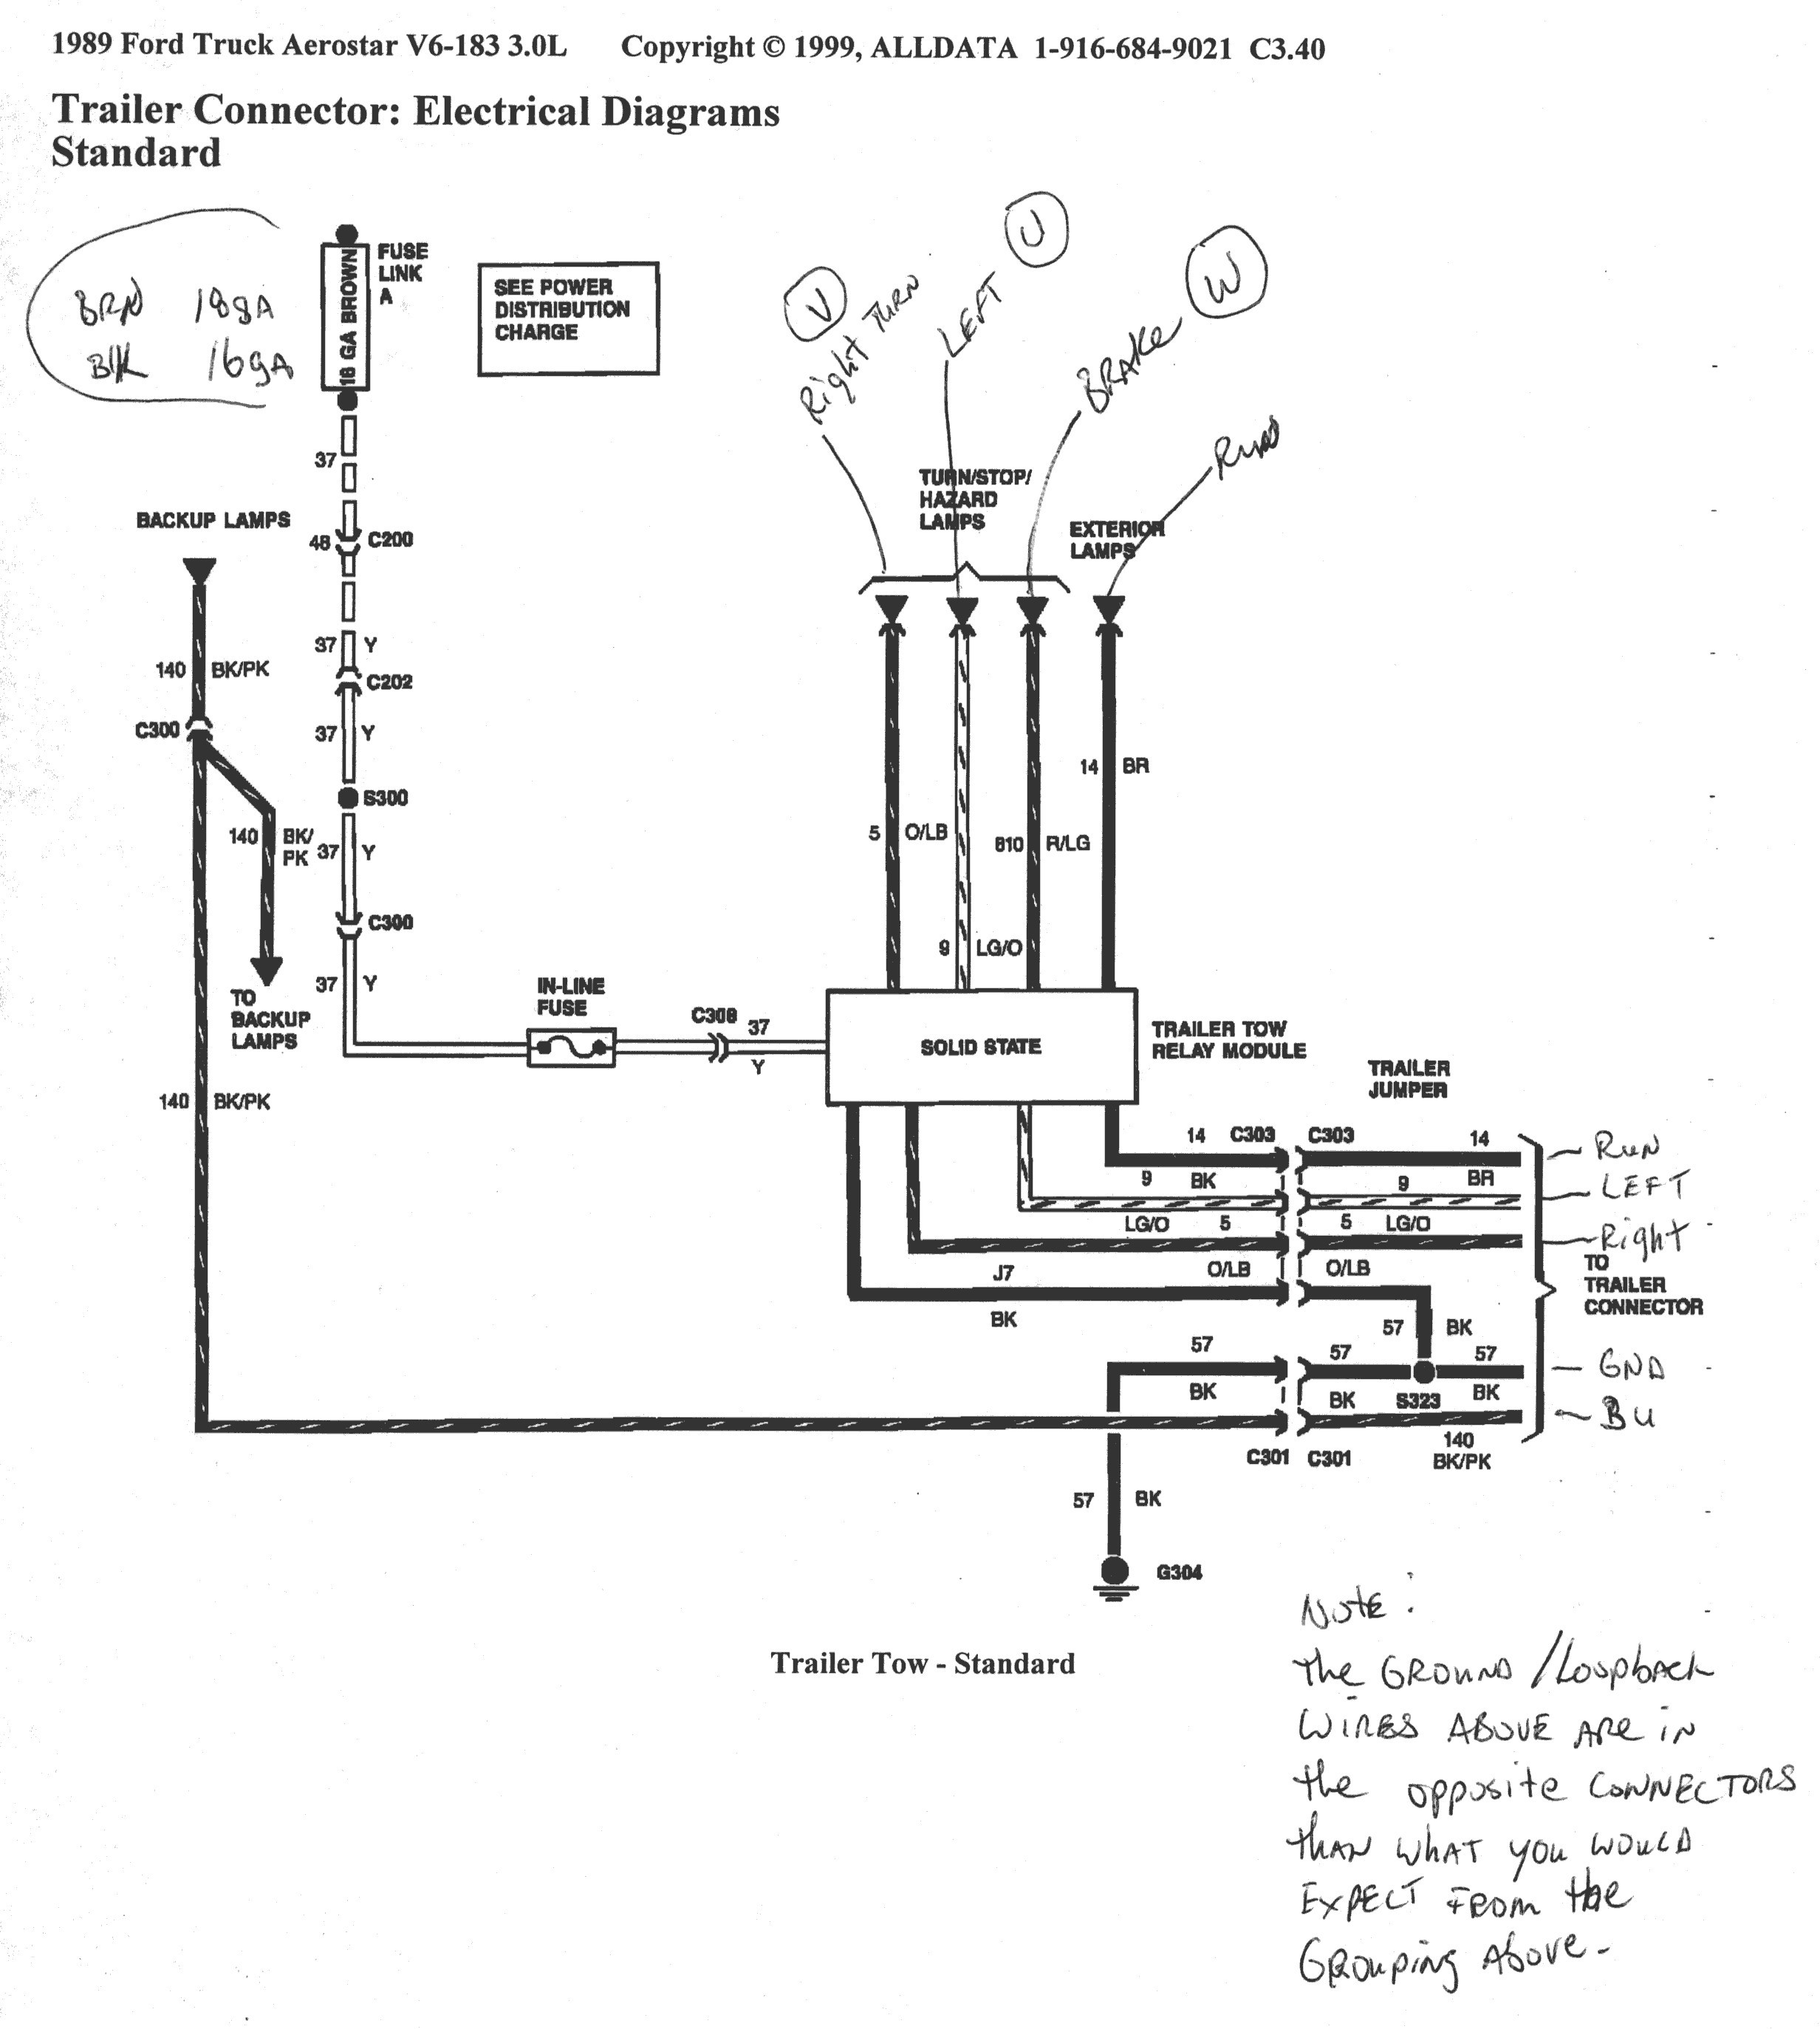 1989 Ford F250 Wiring Diagram Pictures - Wiring Diagram Sample